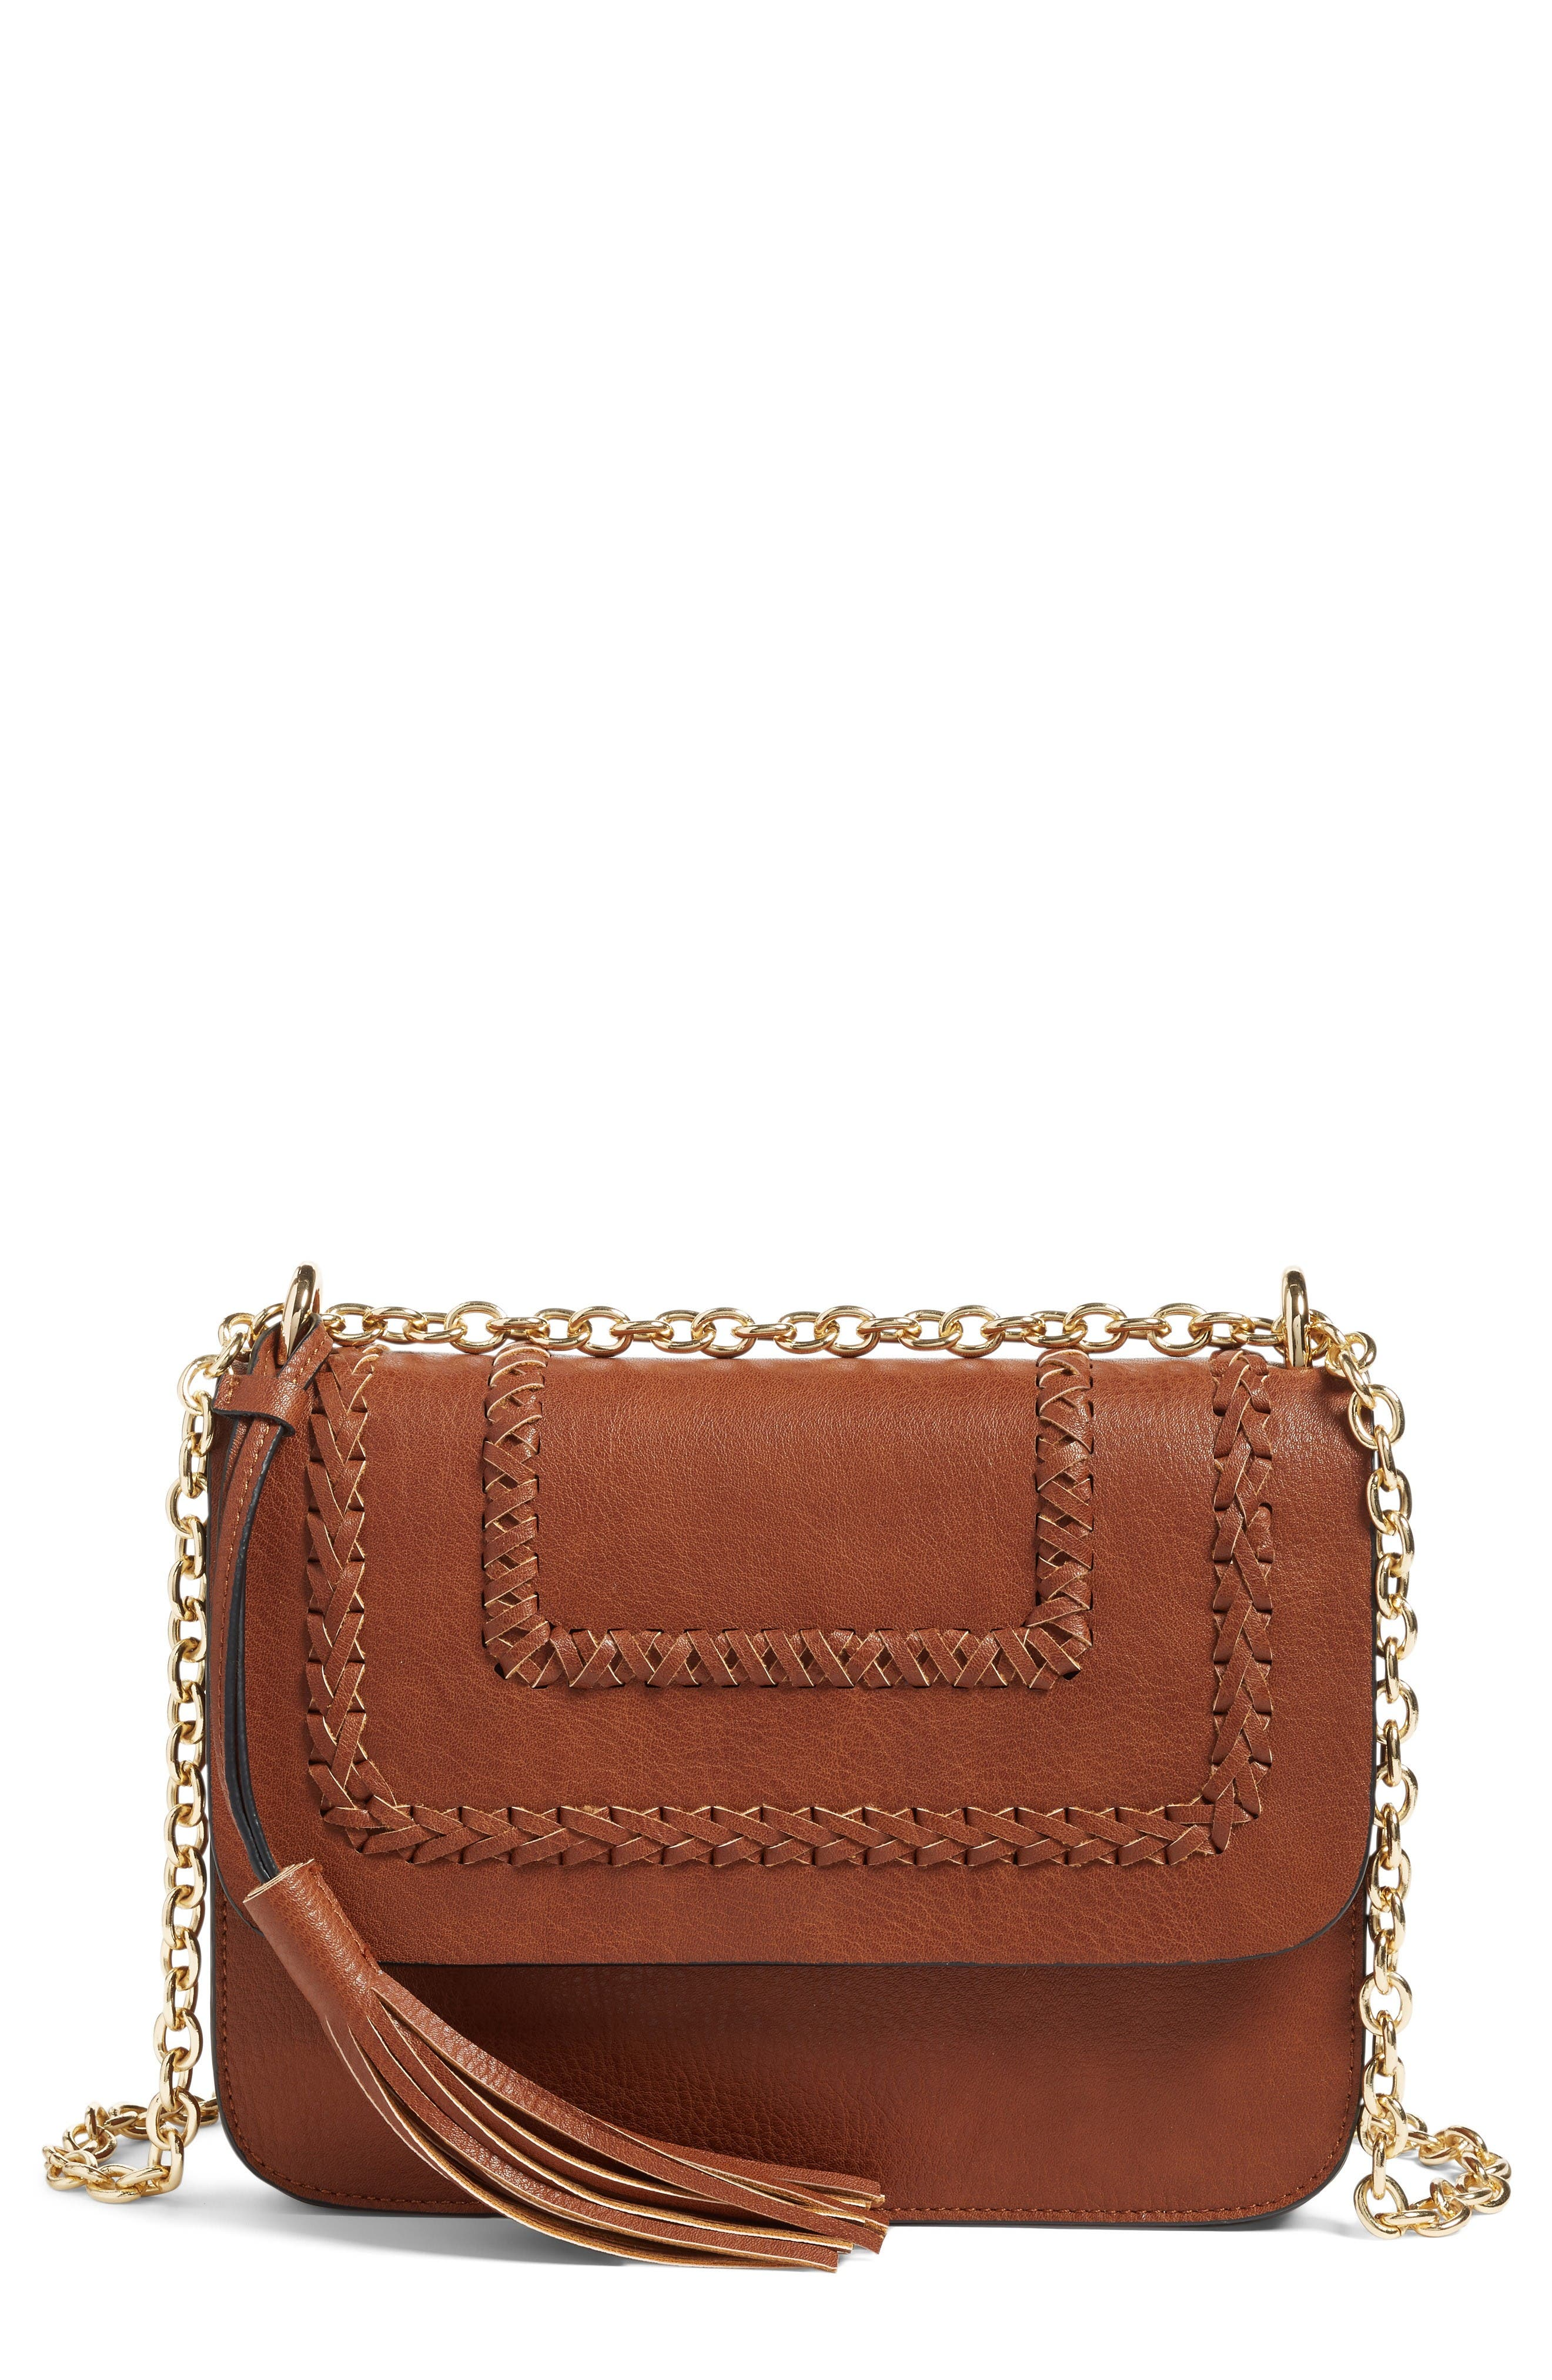 Alternate Image 1 Selected - Chelsea28 Chace Faux Leather Shoulder Bag